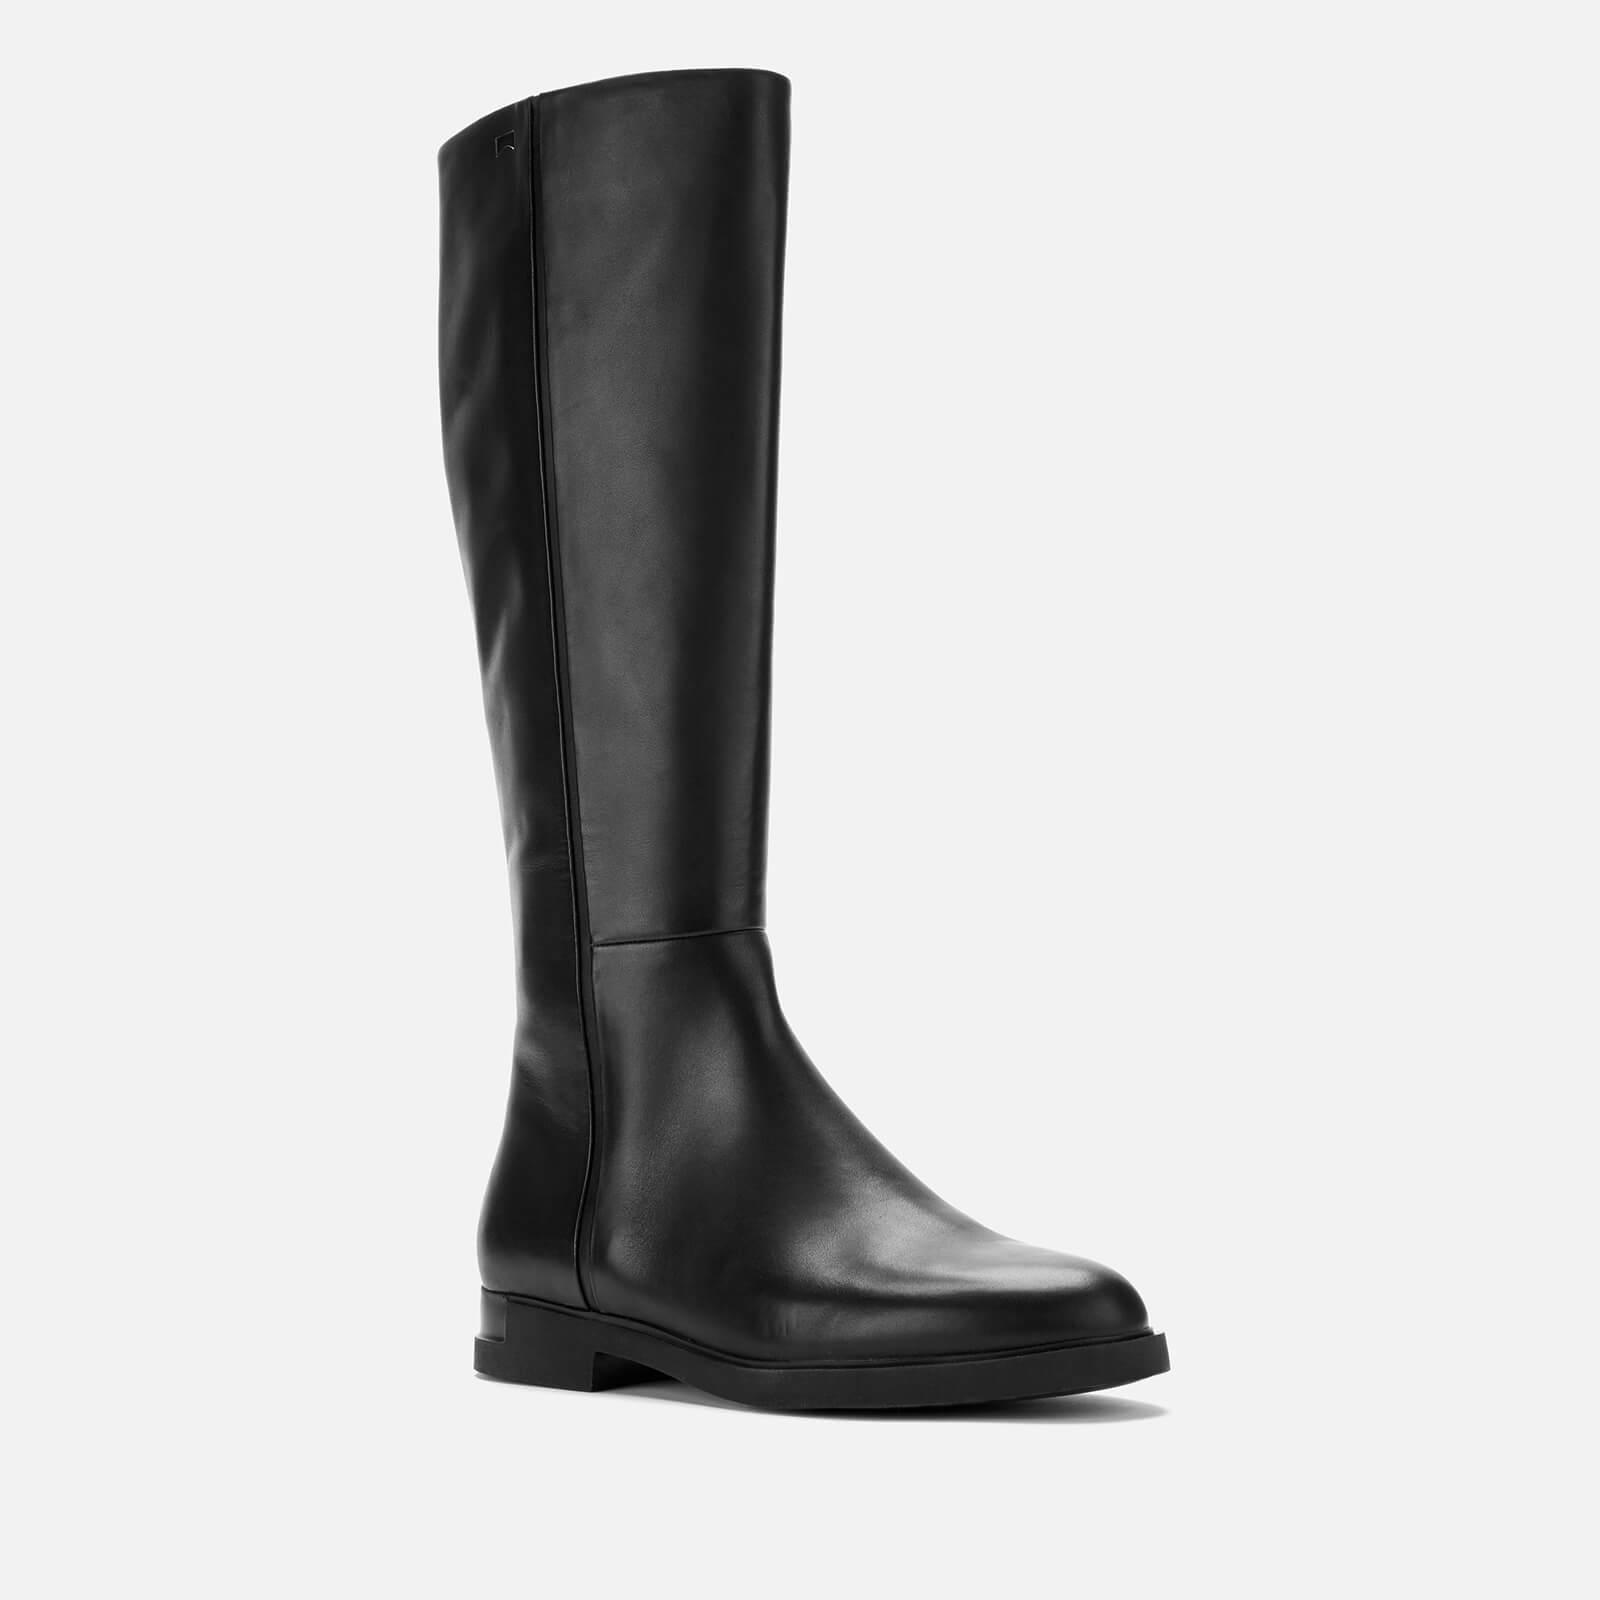 Camper Iman Womens Chocolate Leather Knee High Boots